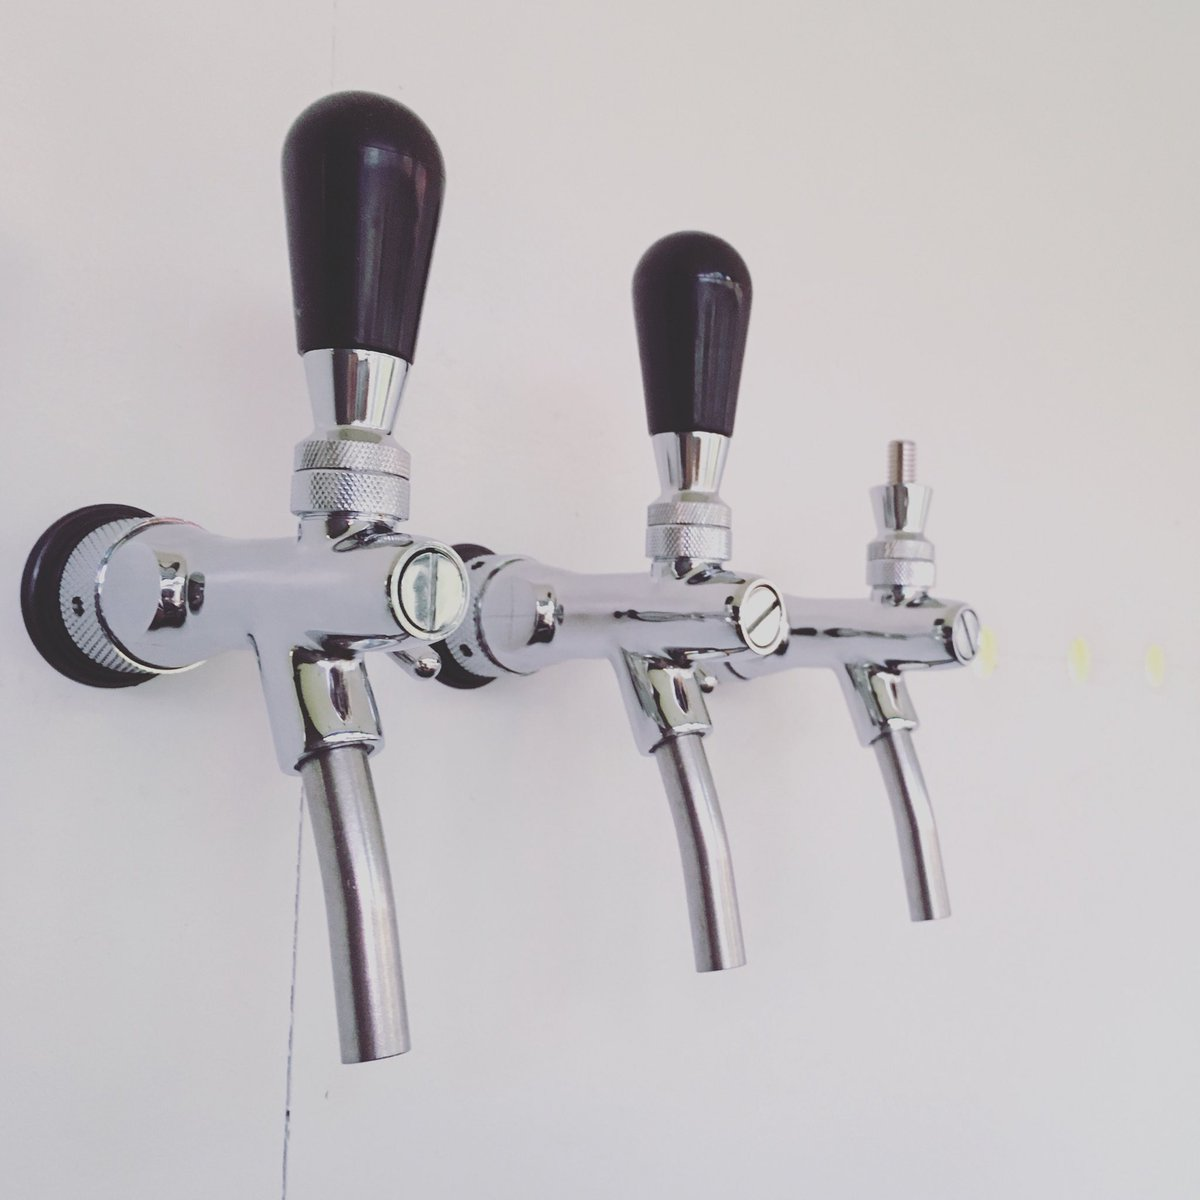 Beer tap hook up